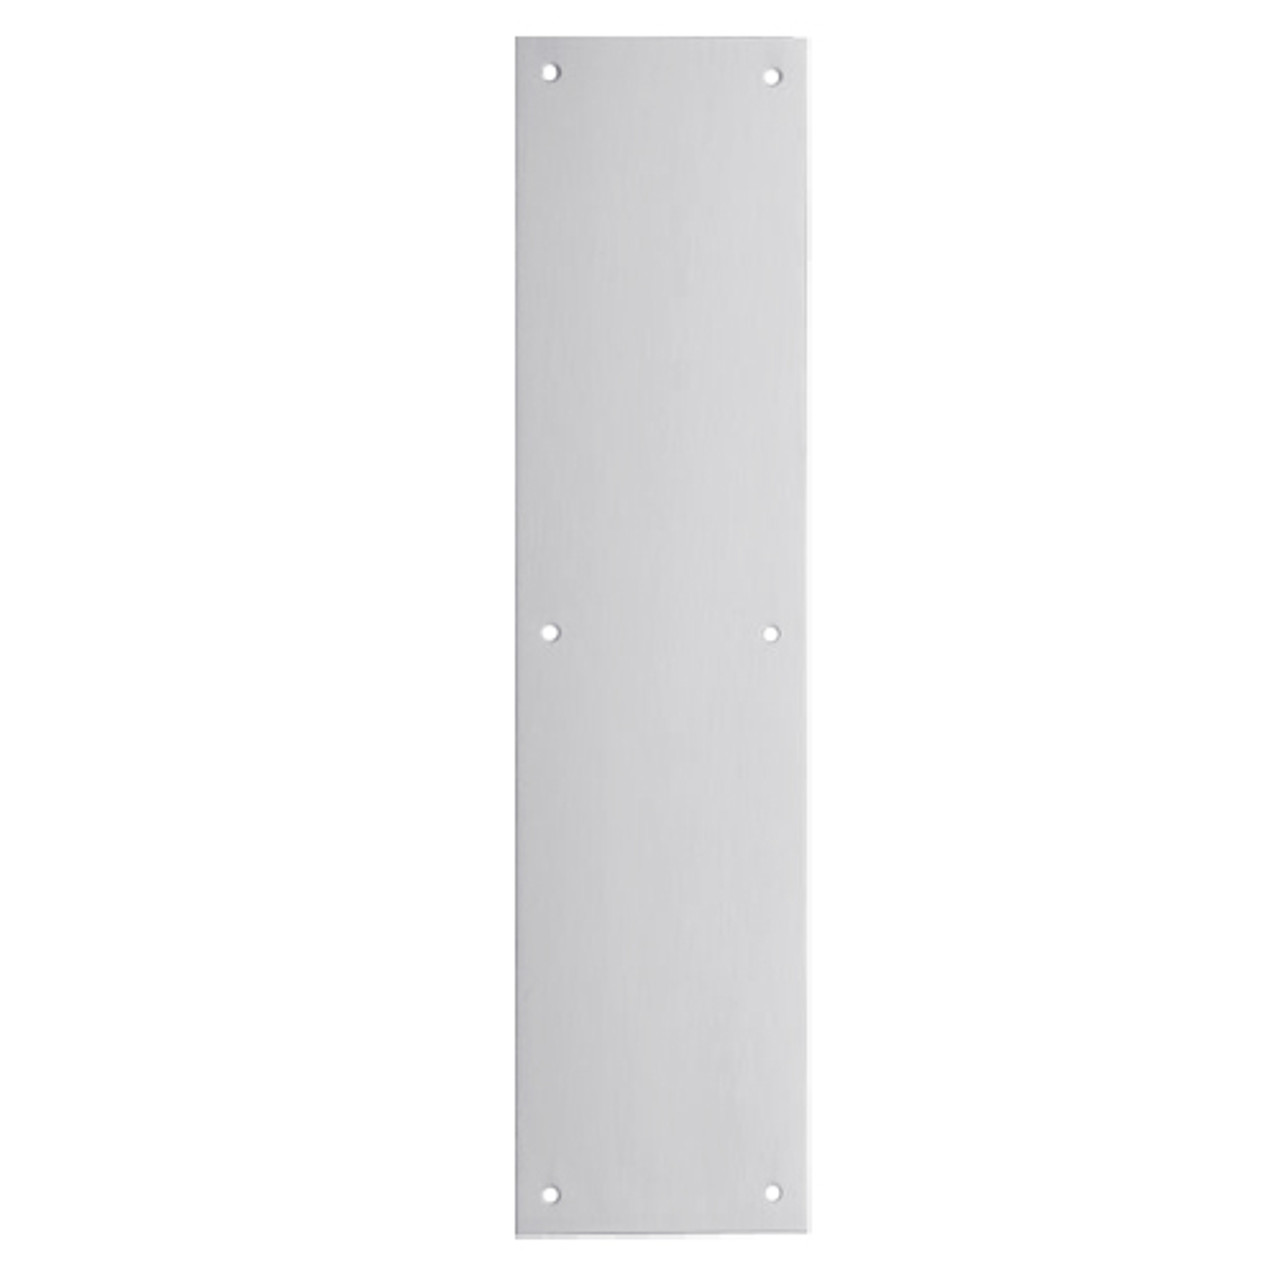 8200-US26D-3-5x15 IVES Architectural Door Trim 3.5x15 Inch Push Plate in Satin Chrome